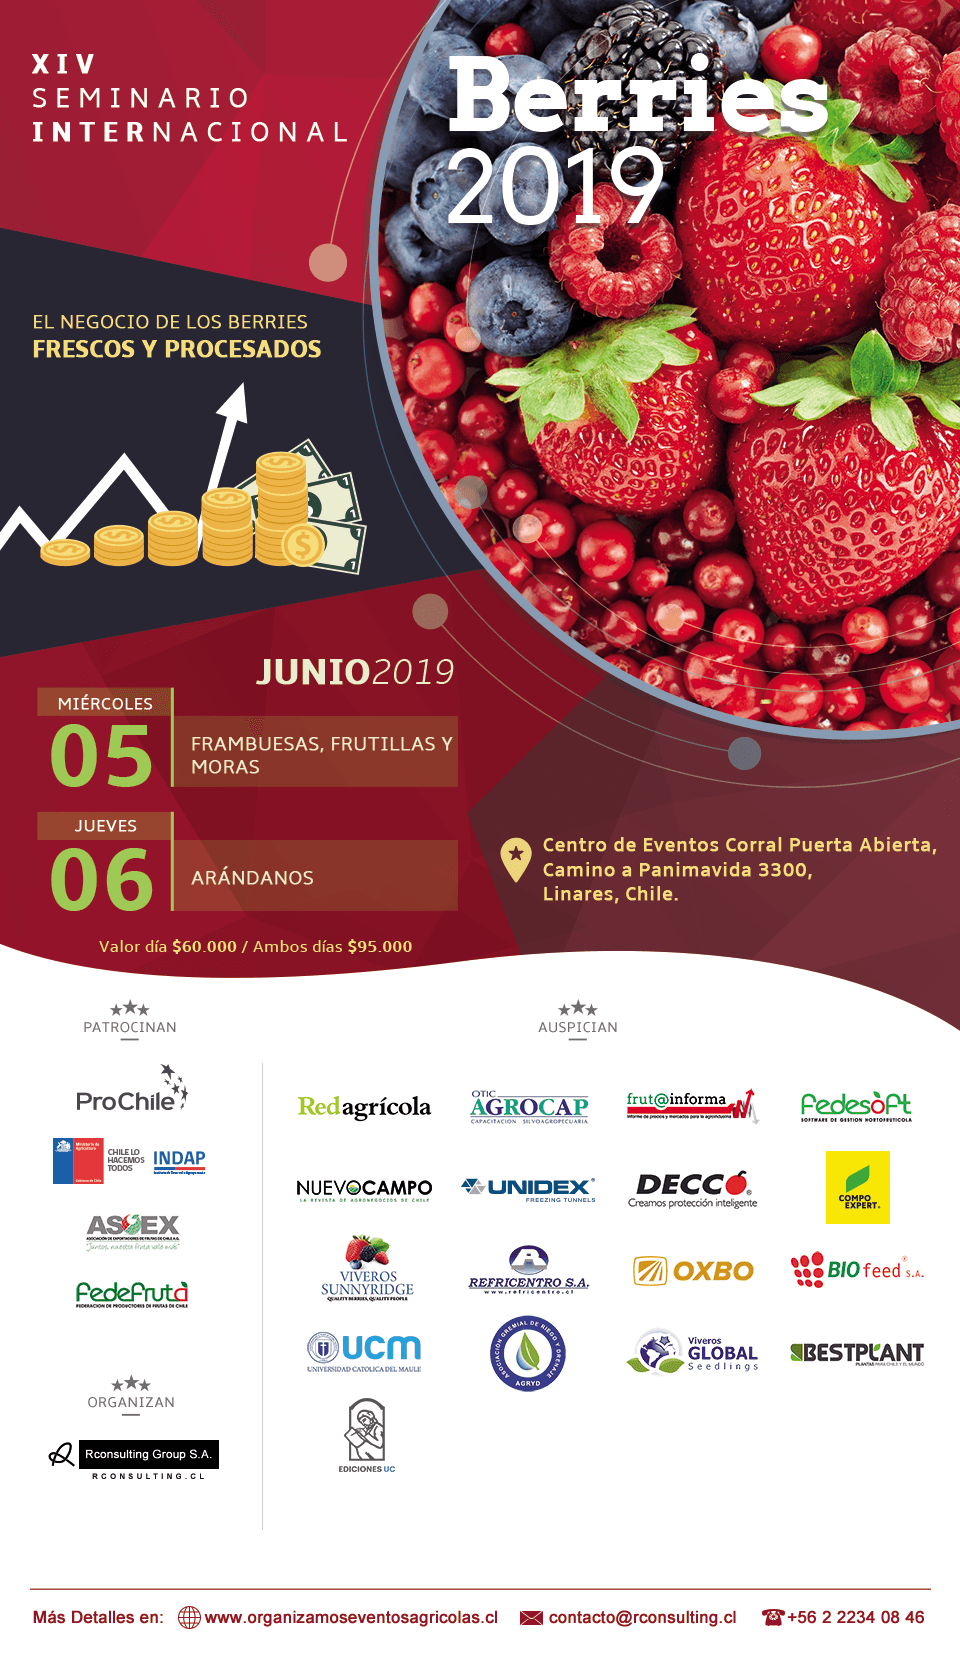 XIV Seminario Internacional de Berries